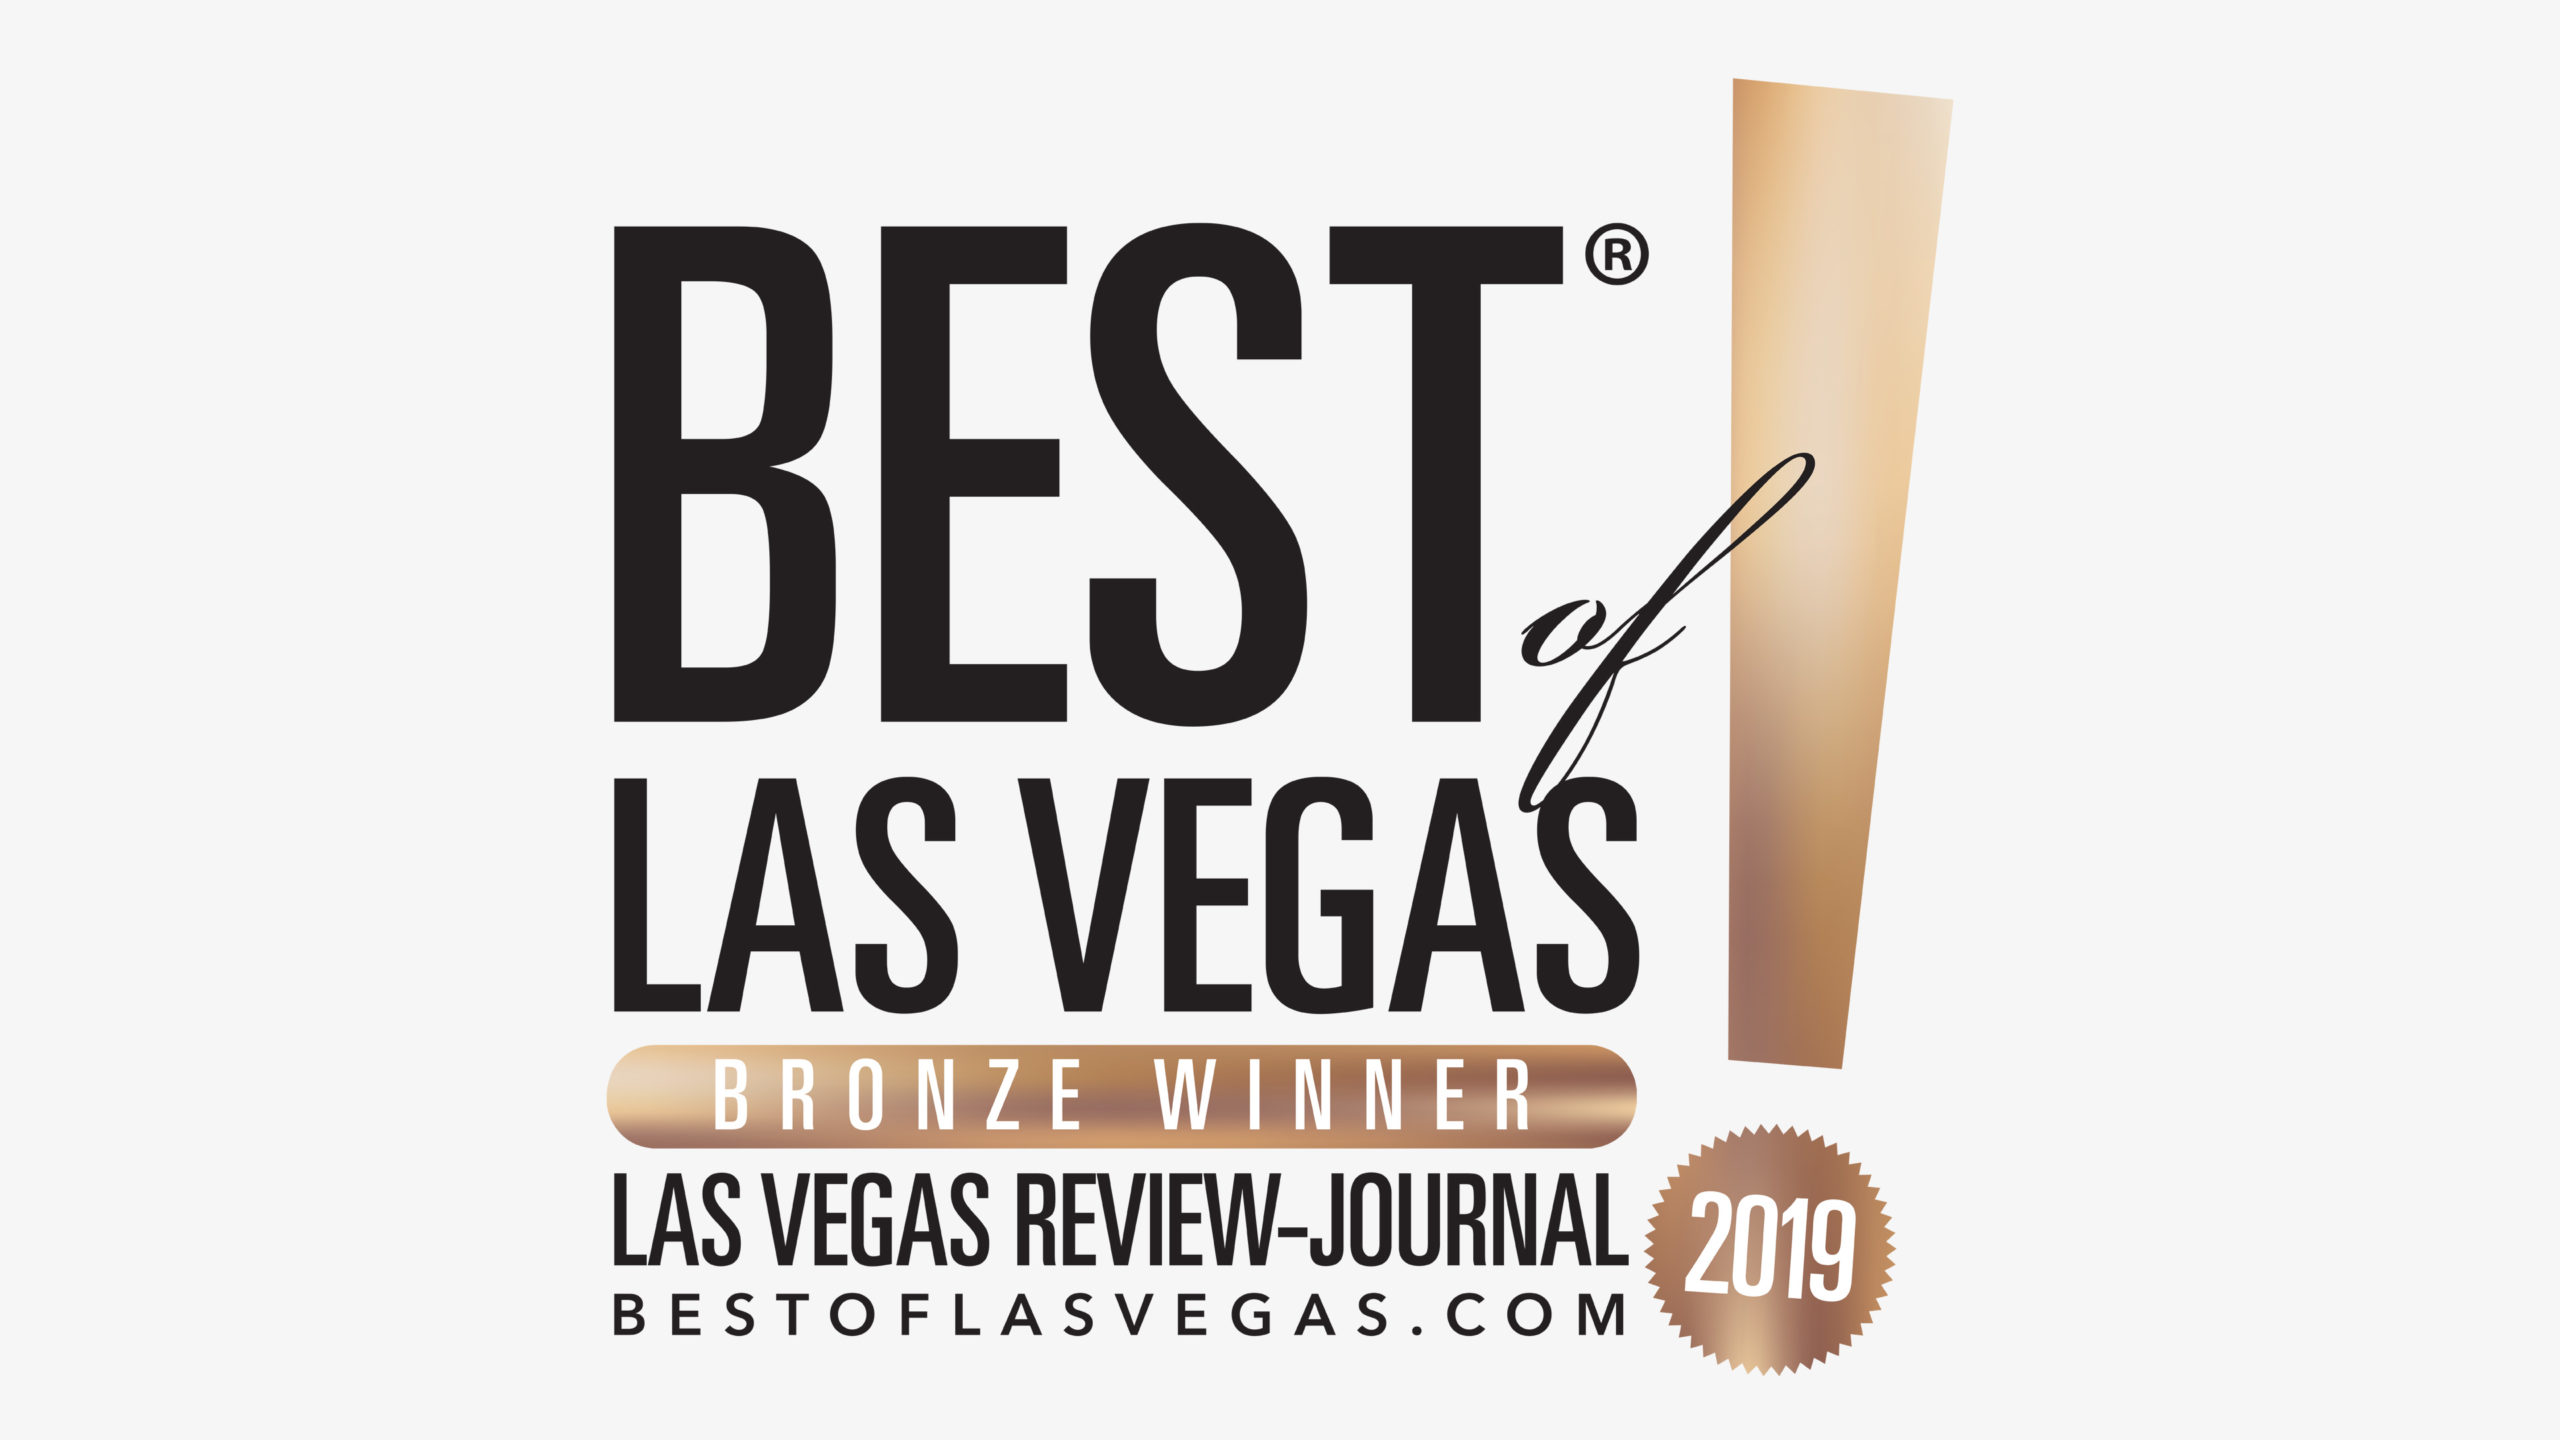 Best Of Las Vegas Bronze Winner2019 Logo